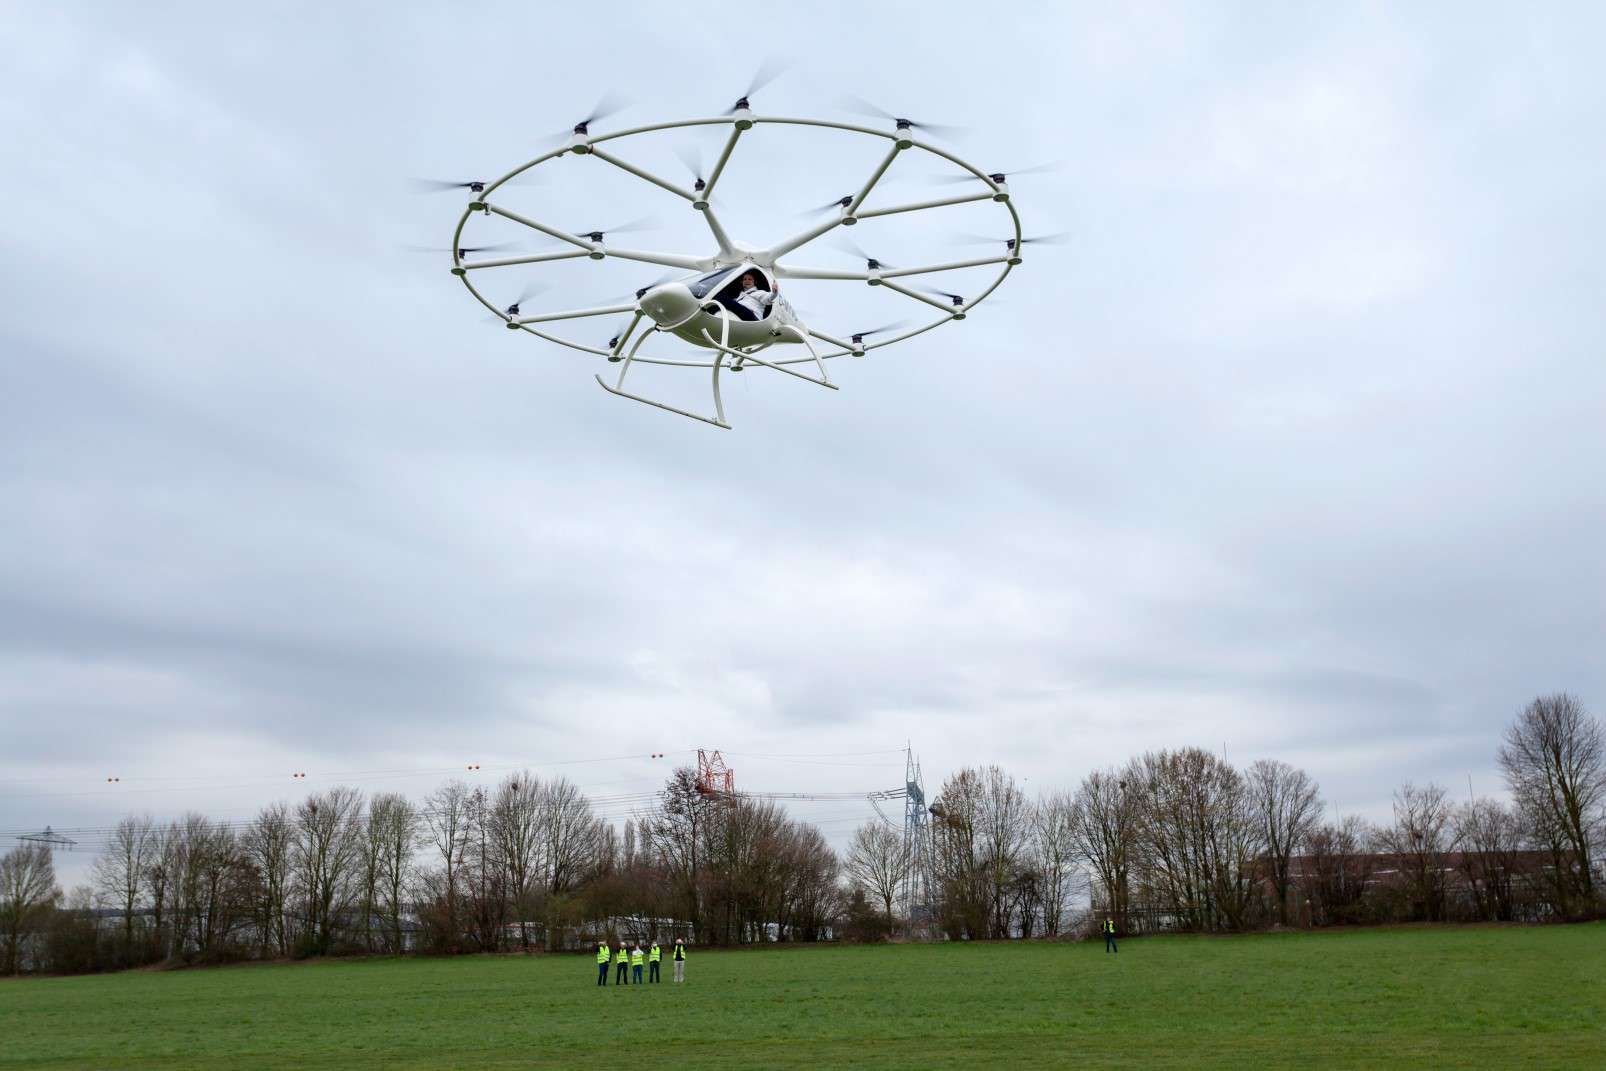 Volocopter passenger-carrying drone first flight